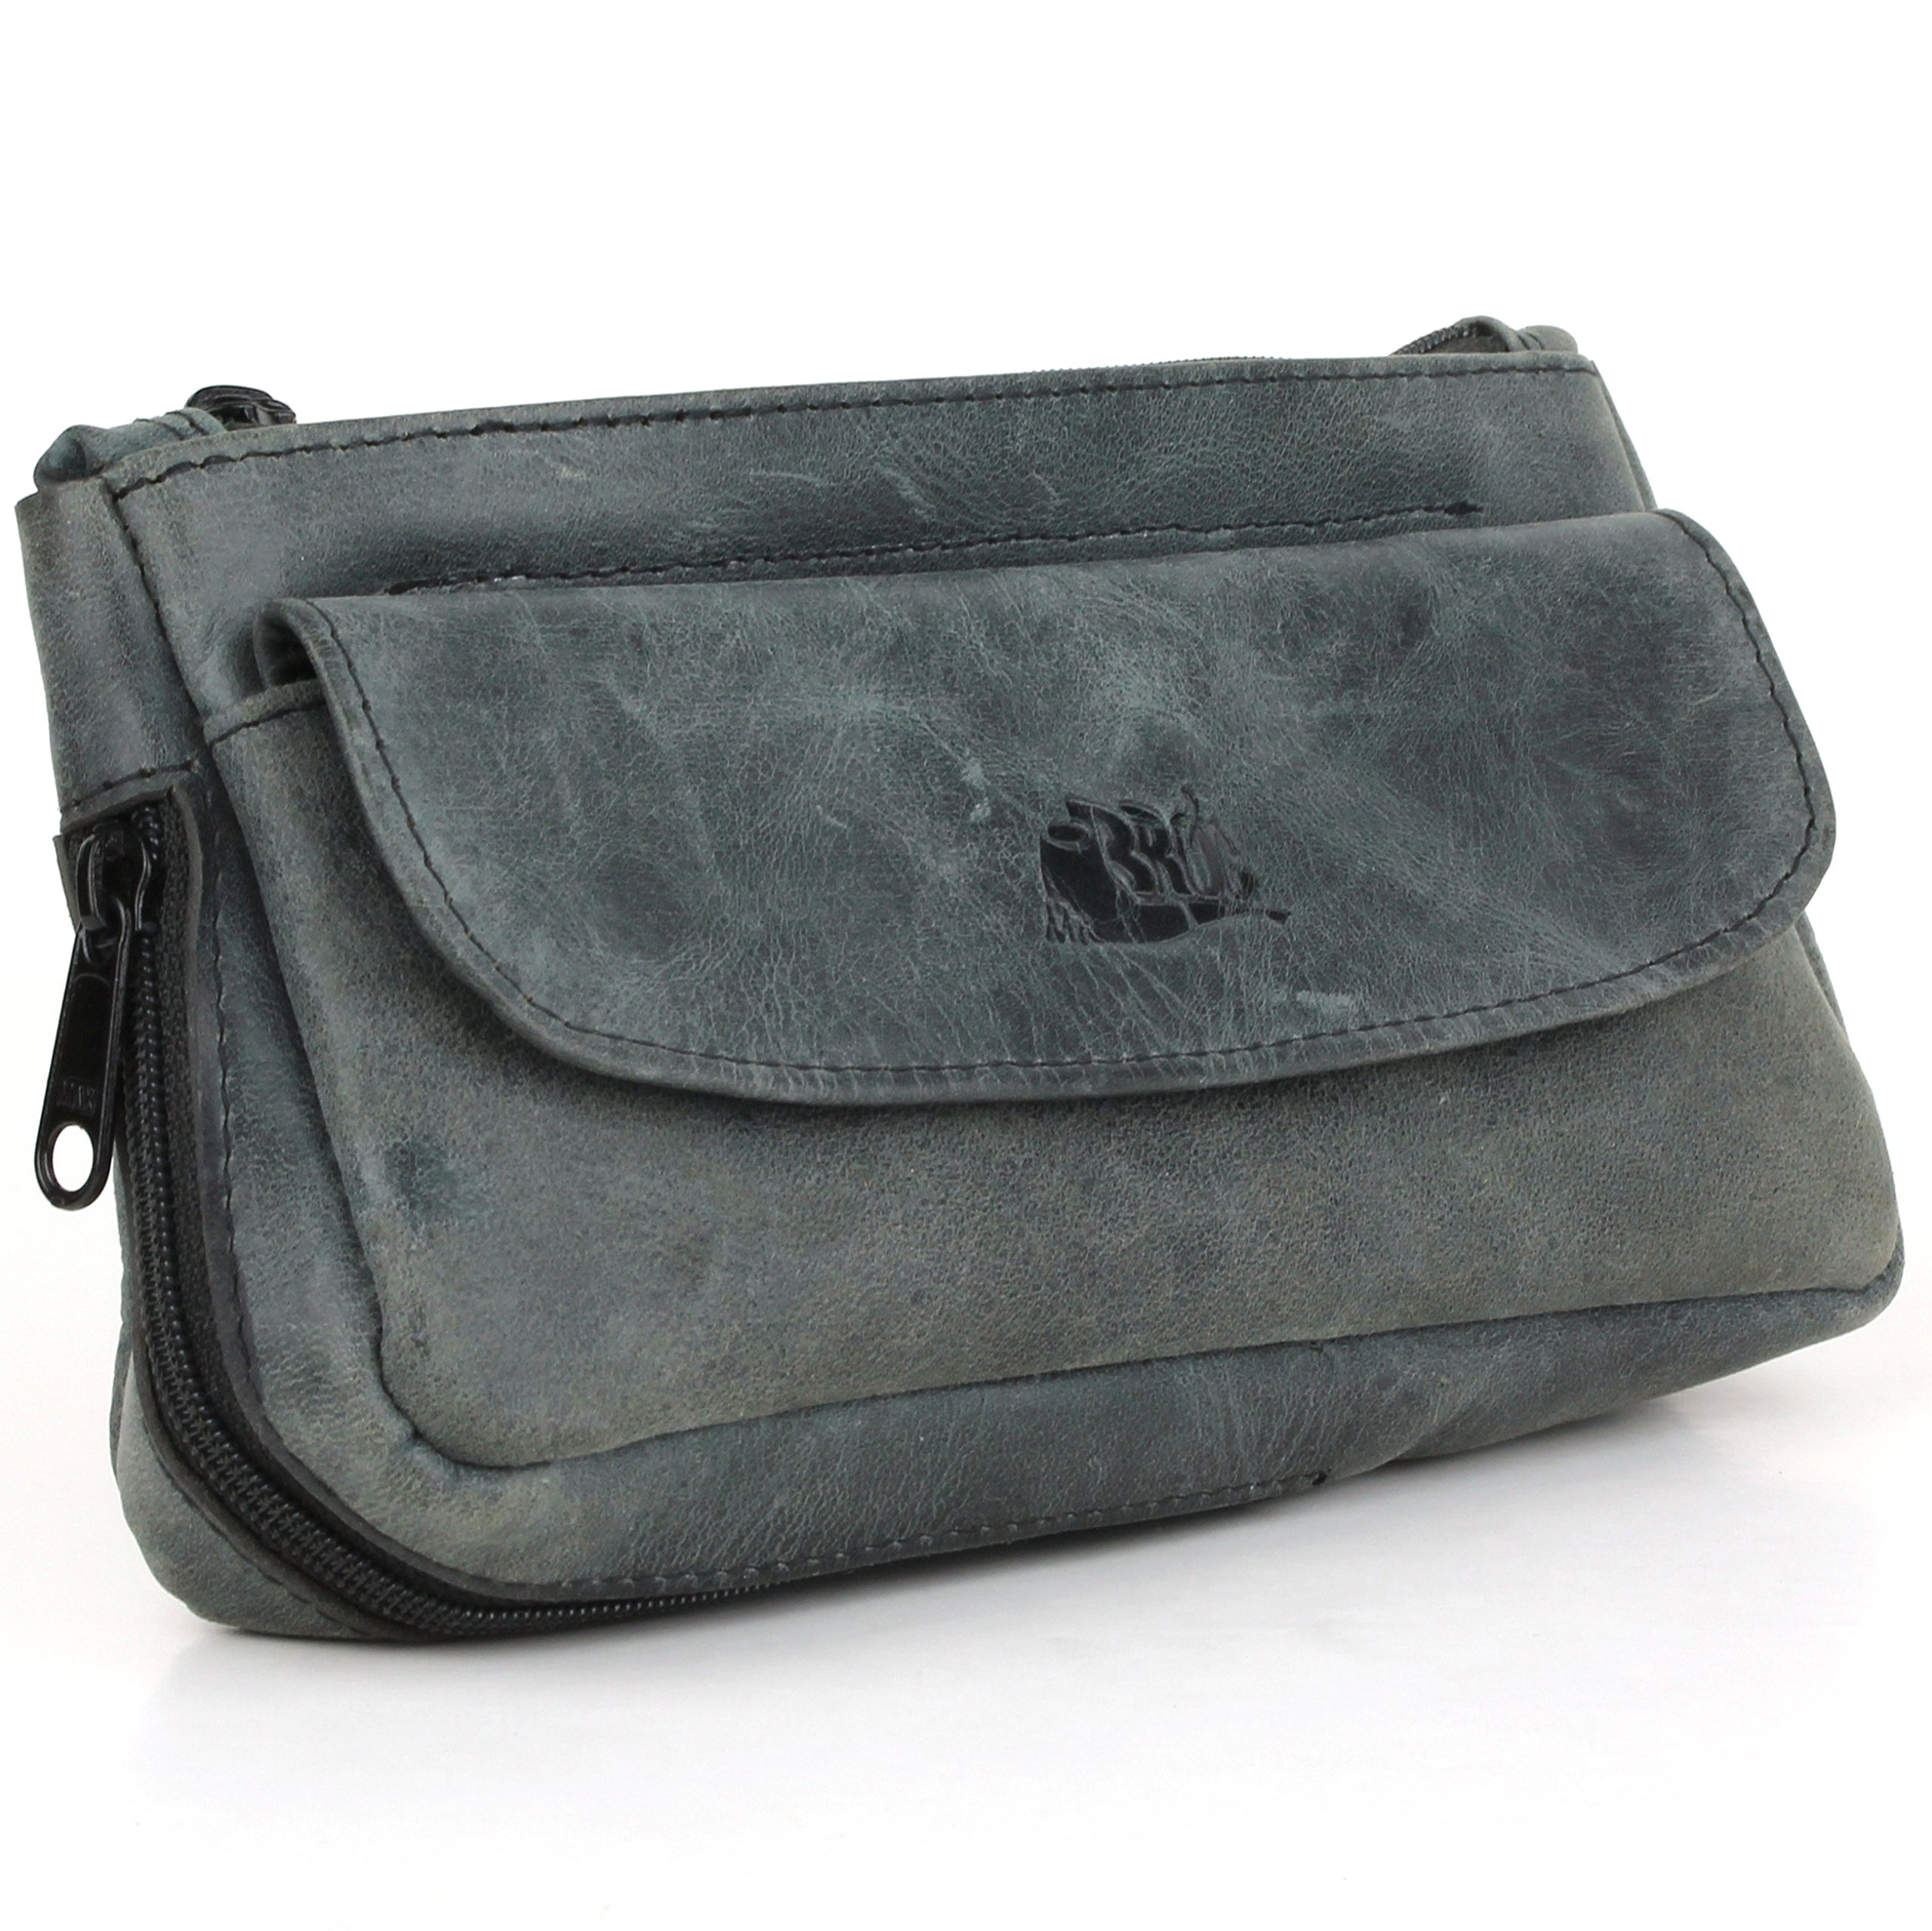 Tobacco Pipe Pouch - Diesel Leather - [Slate Black]